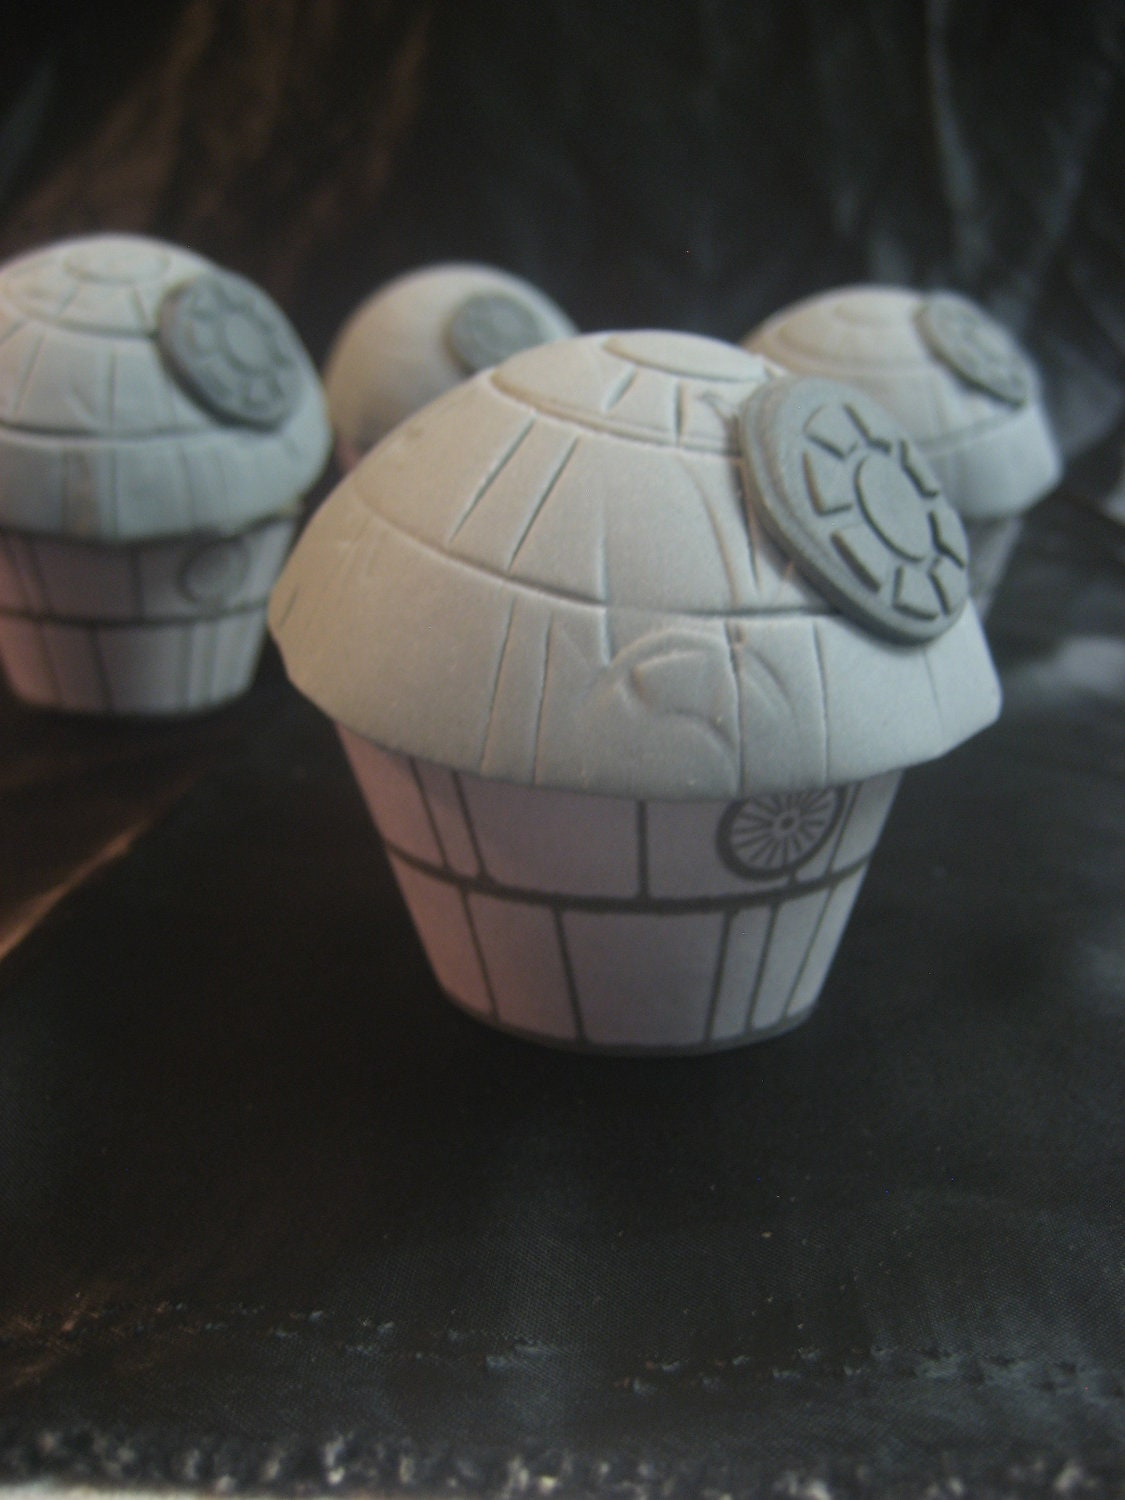 Star Wars DEATH STAR Cupcake Toppers and Wrappers - Edible Birthday, Shower, Bridal, Wedding